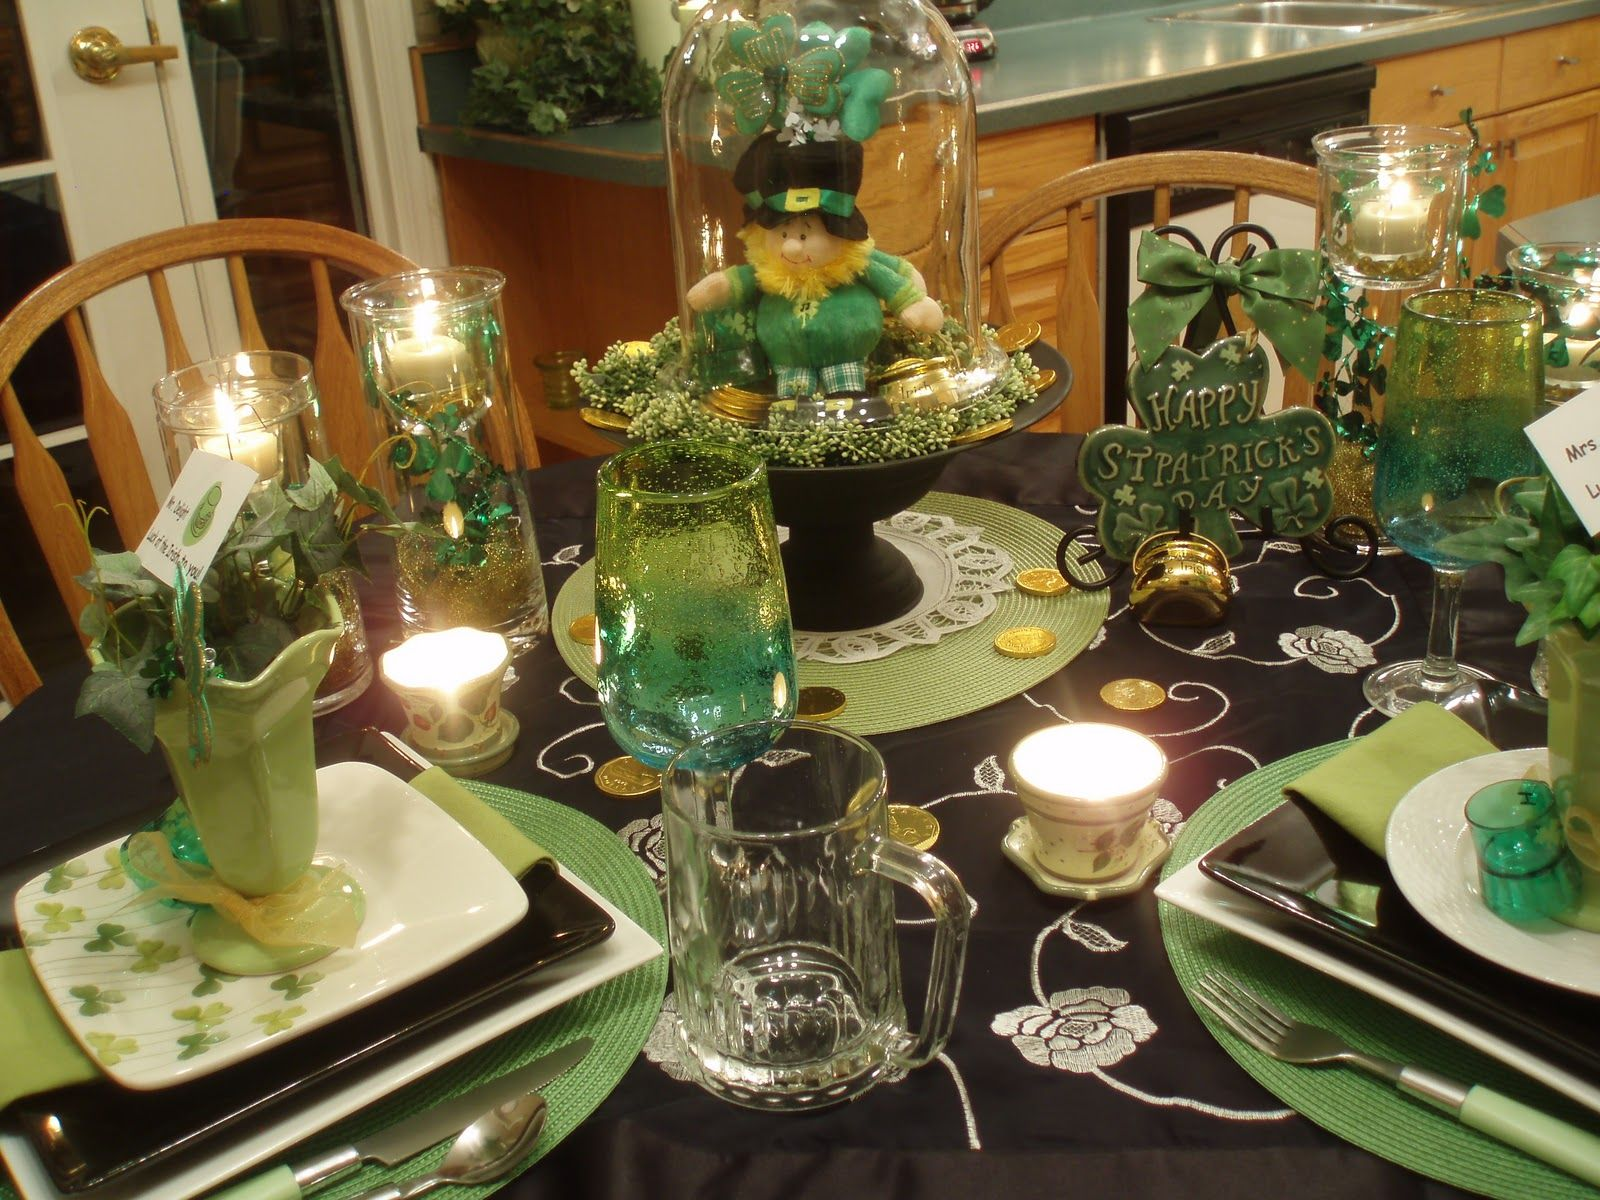 Dining Delight Embracing the Green. Very clever to put